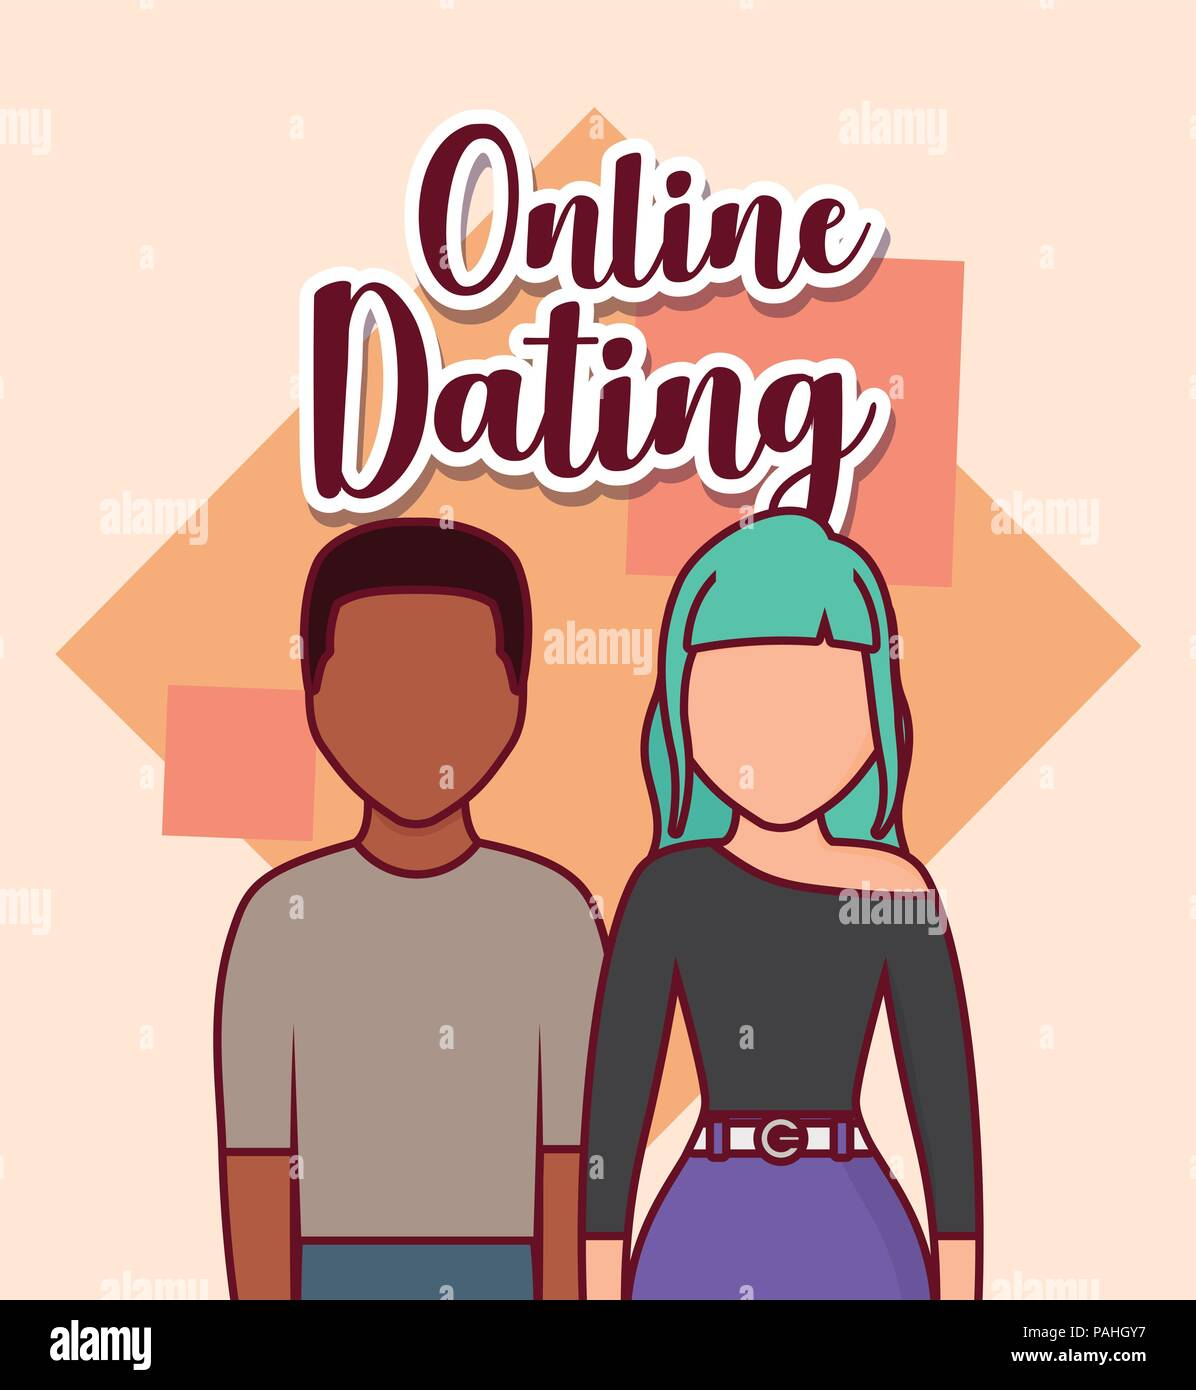 Online dating design with avatar couple over white background, colorful design. vector illustration Stock Vector